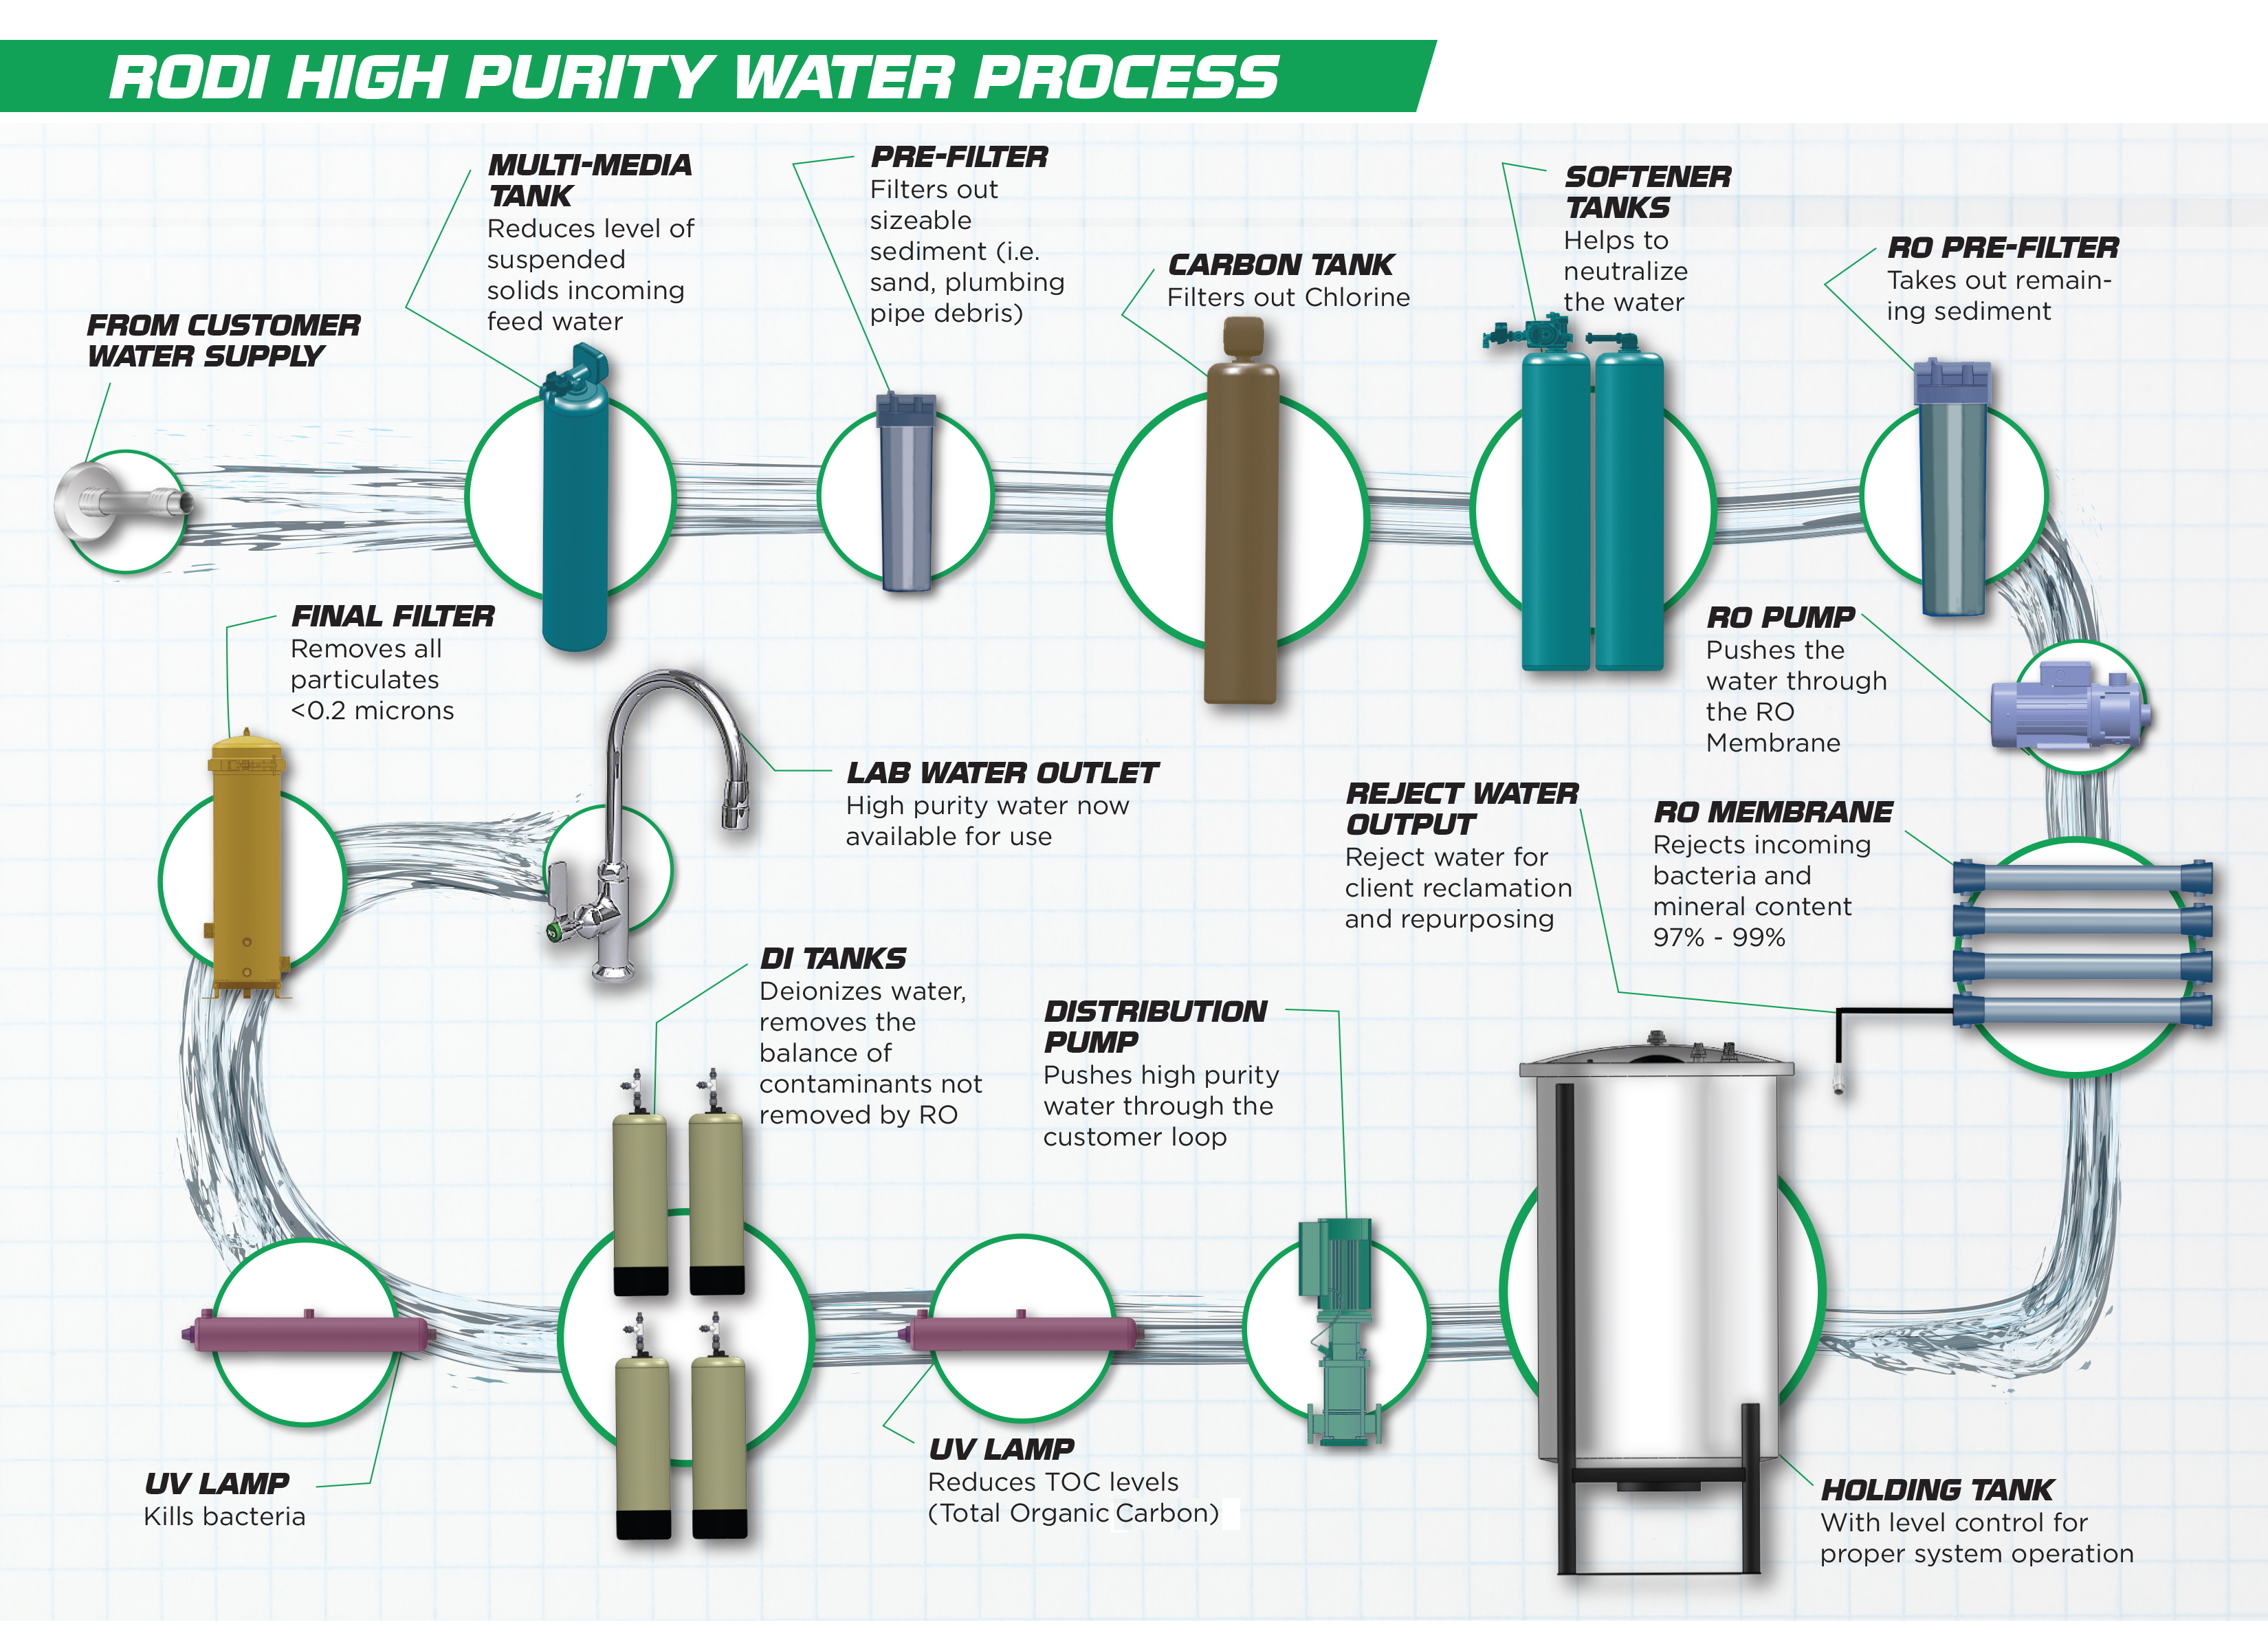 RODI High Purity Water Process